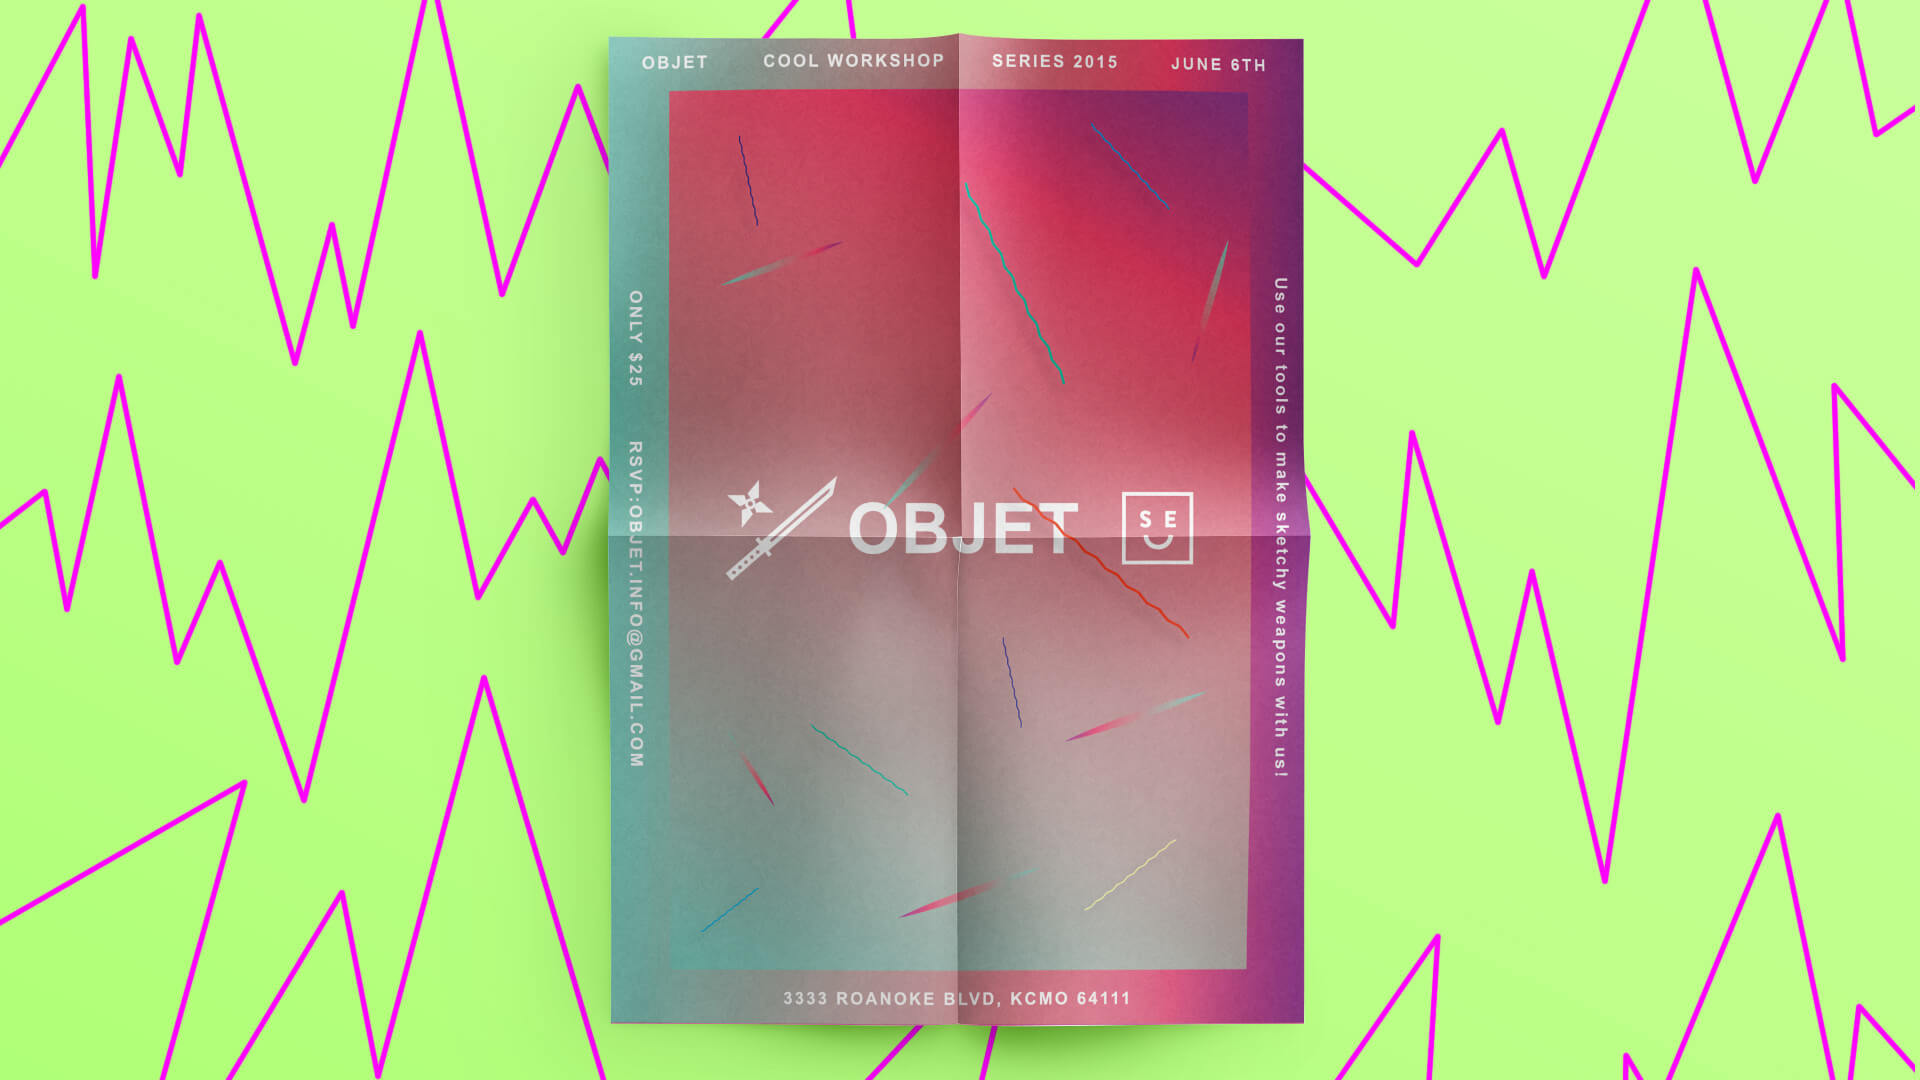 Semplice-FullWidthCover-TEMPLATE-SaveAt70-80Qualit2y2